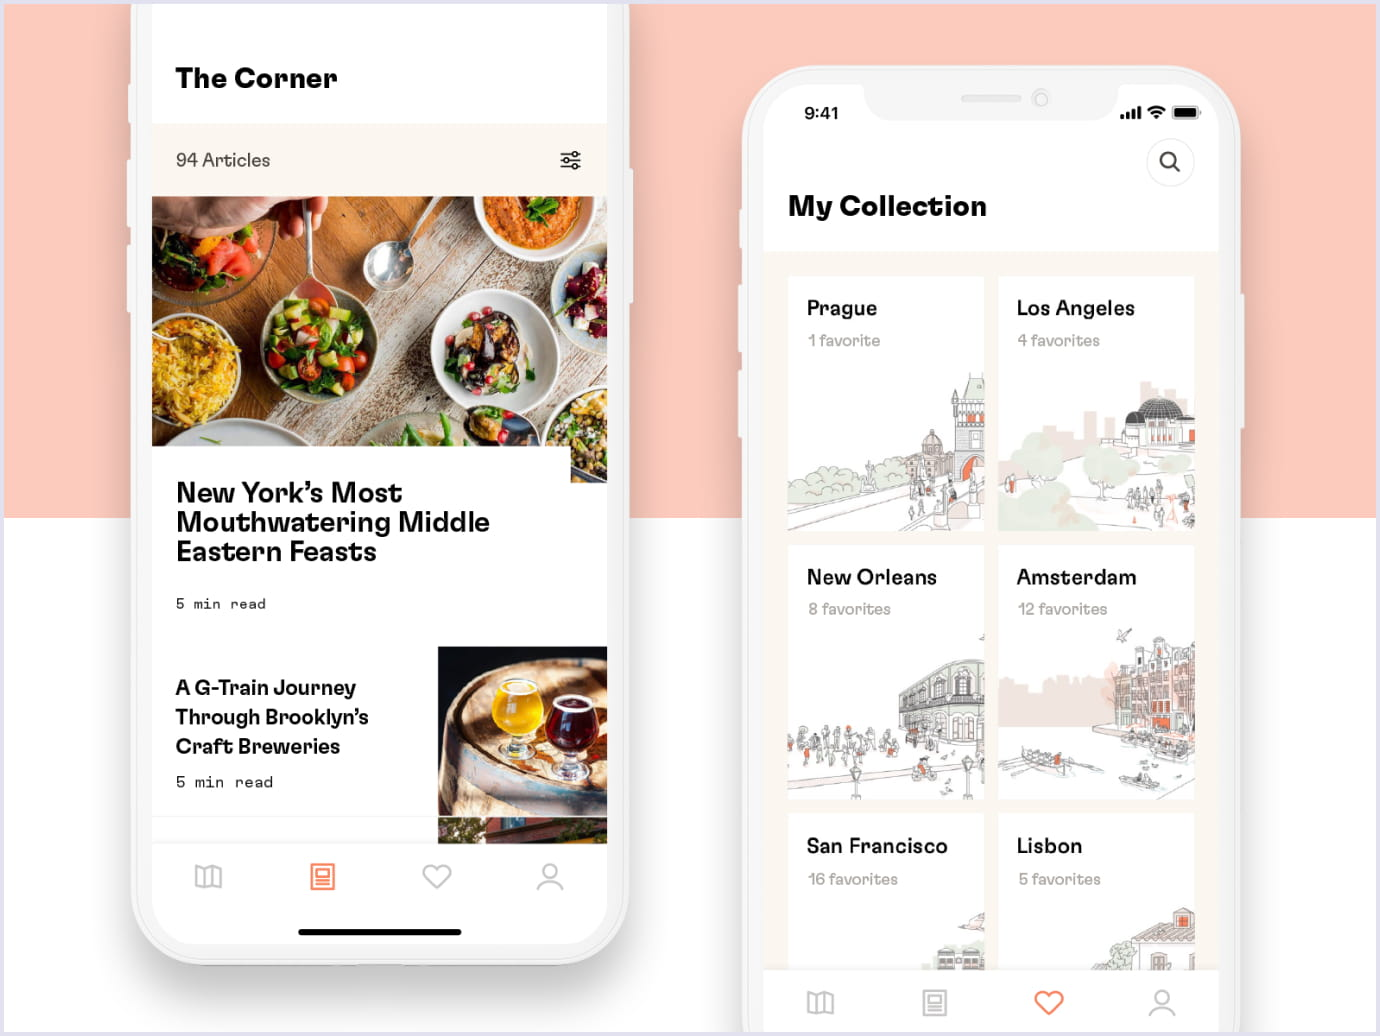 Mobile-first approach as a web design trend by Dorsia